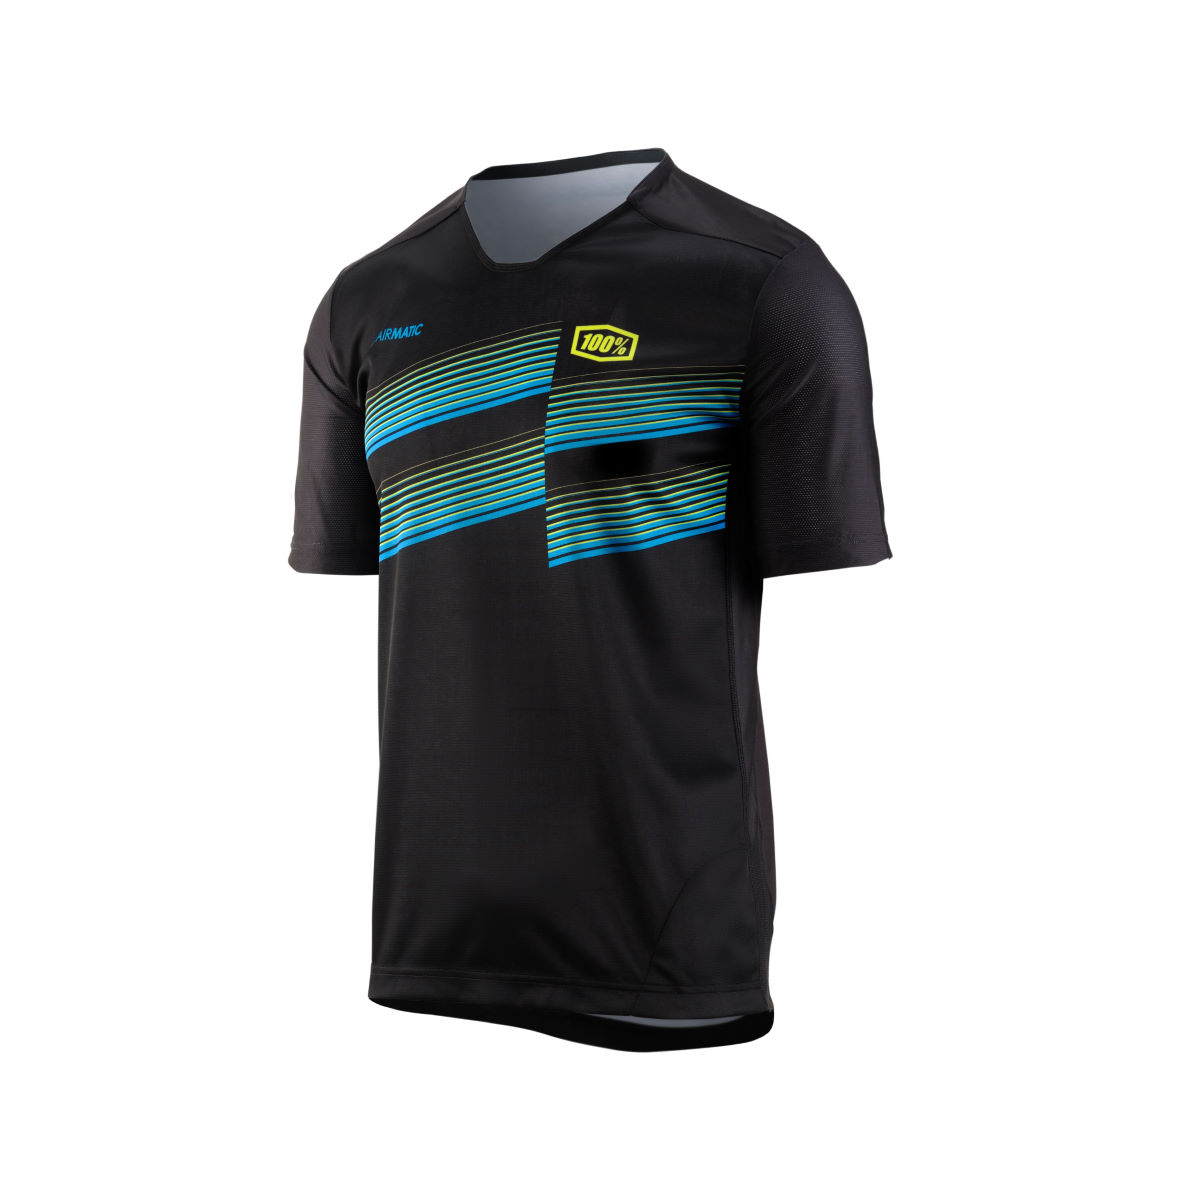 100% Airmatic Jersey - Maillots